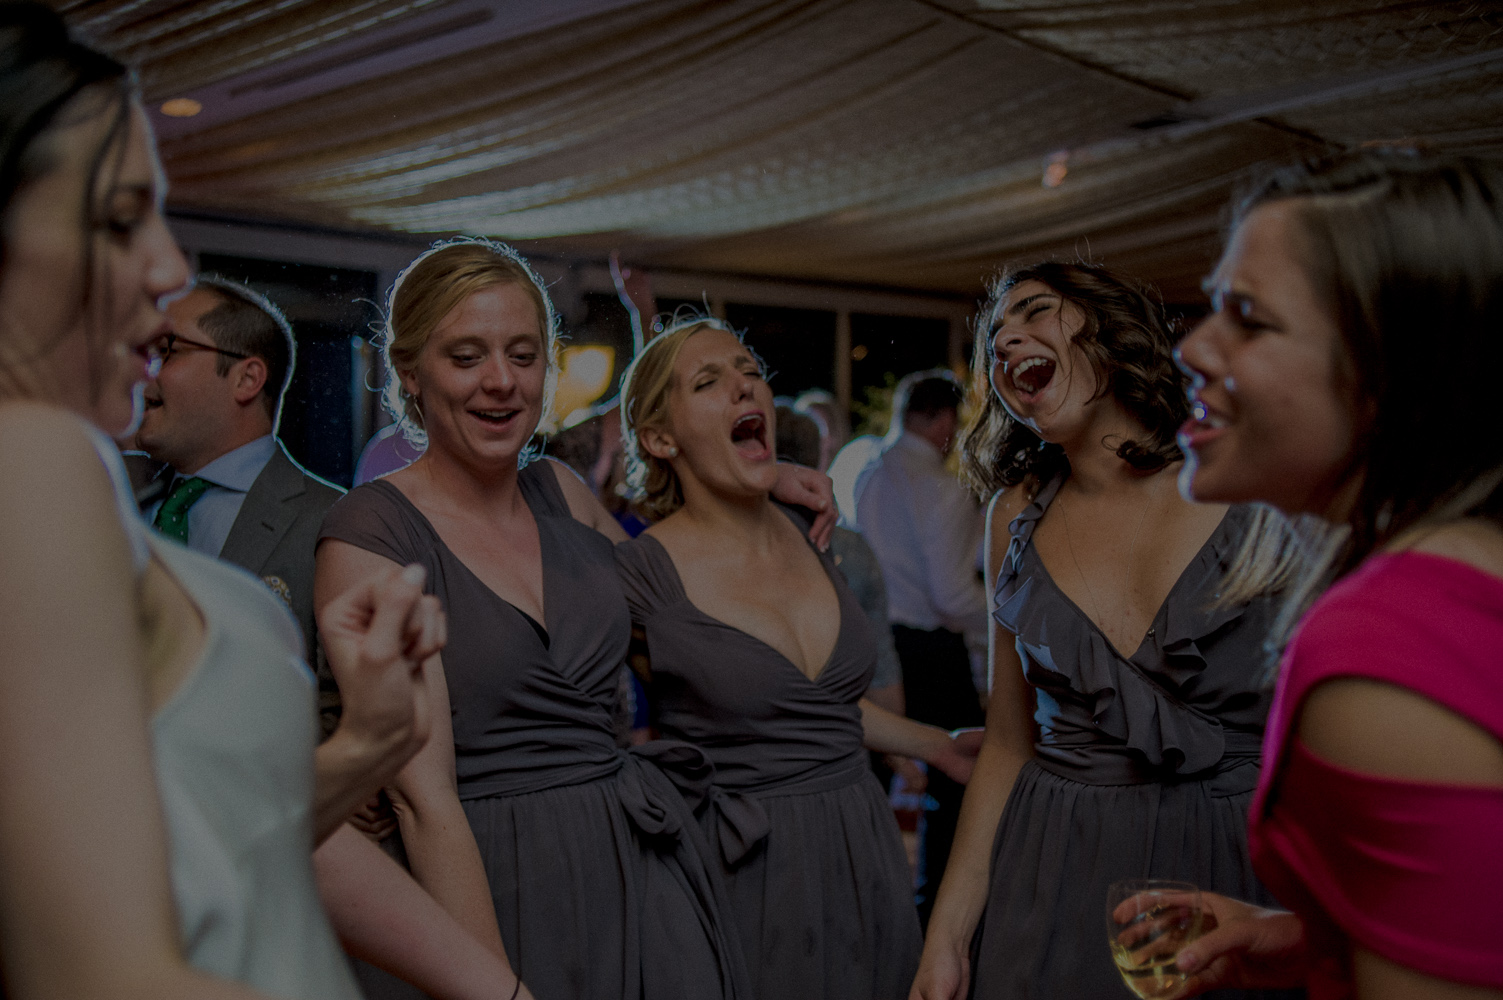 crazy wedding reception photos